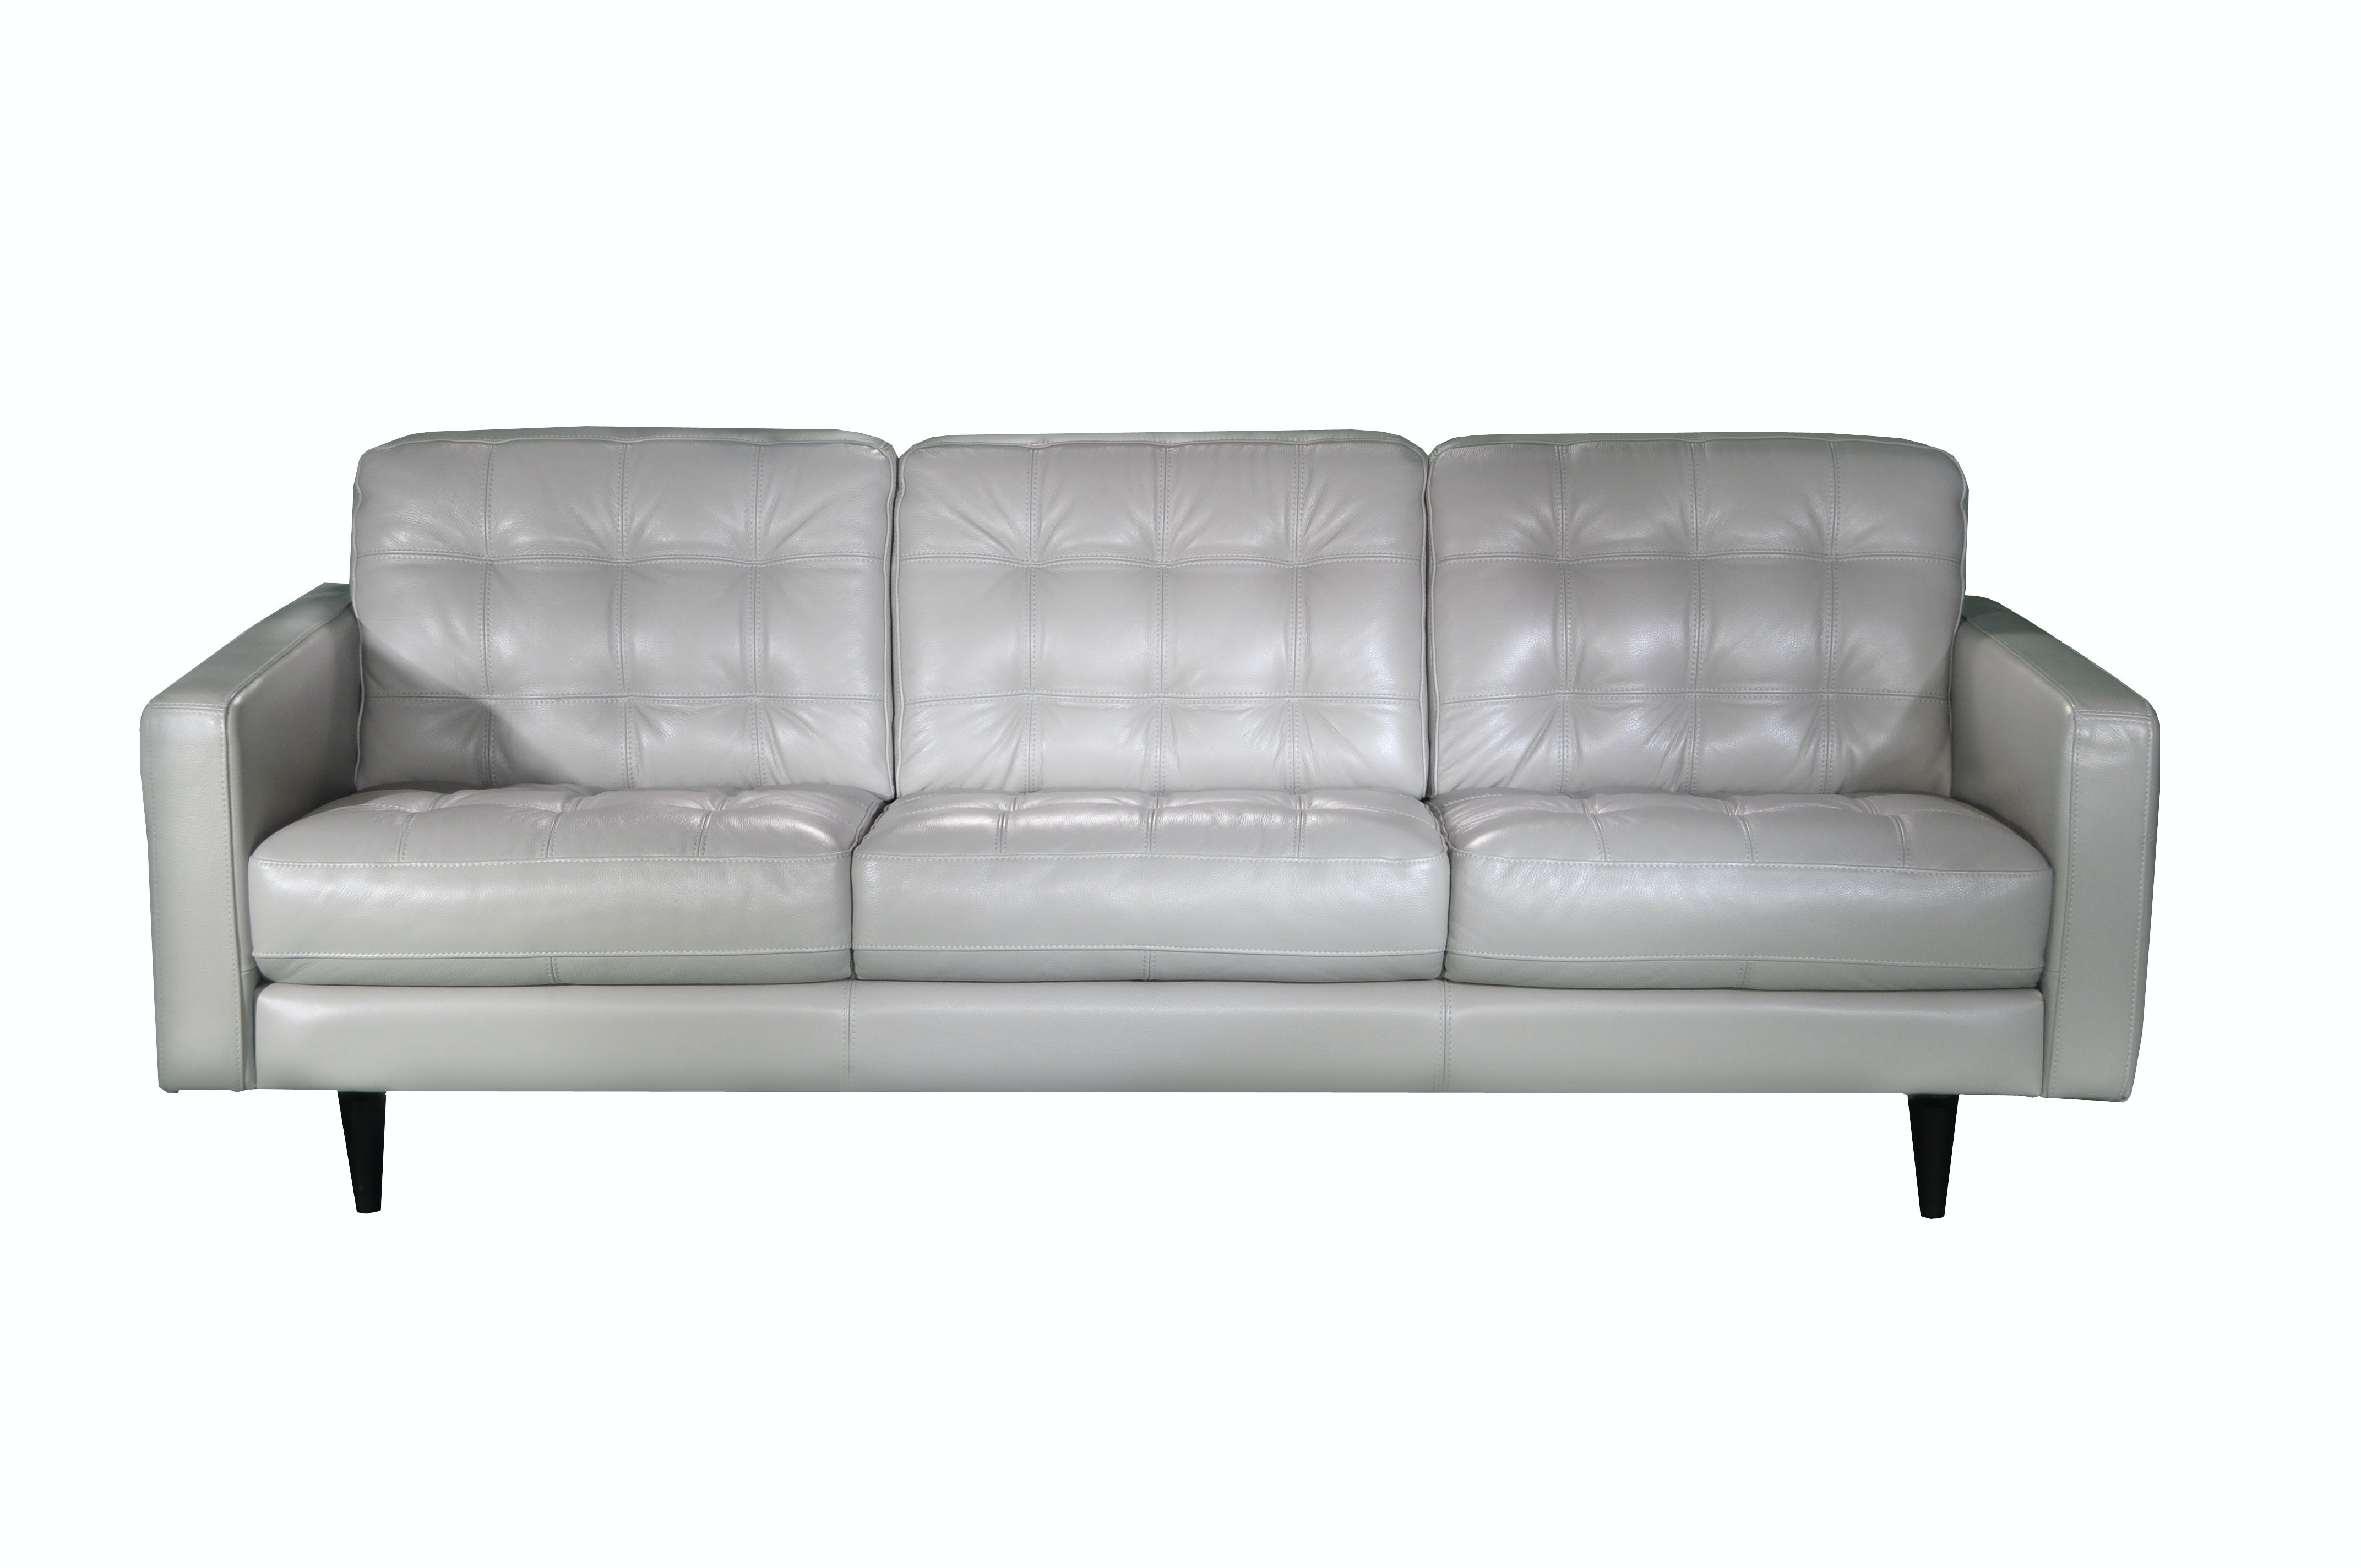 White leather tufted sofa gray color modern tufted for Tufted leather sleeper sofa